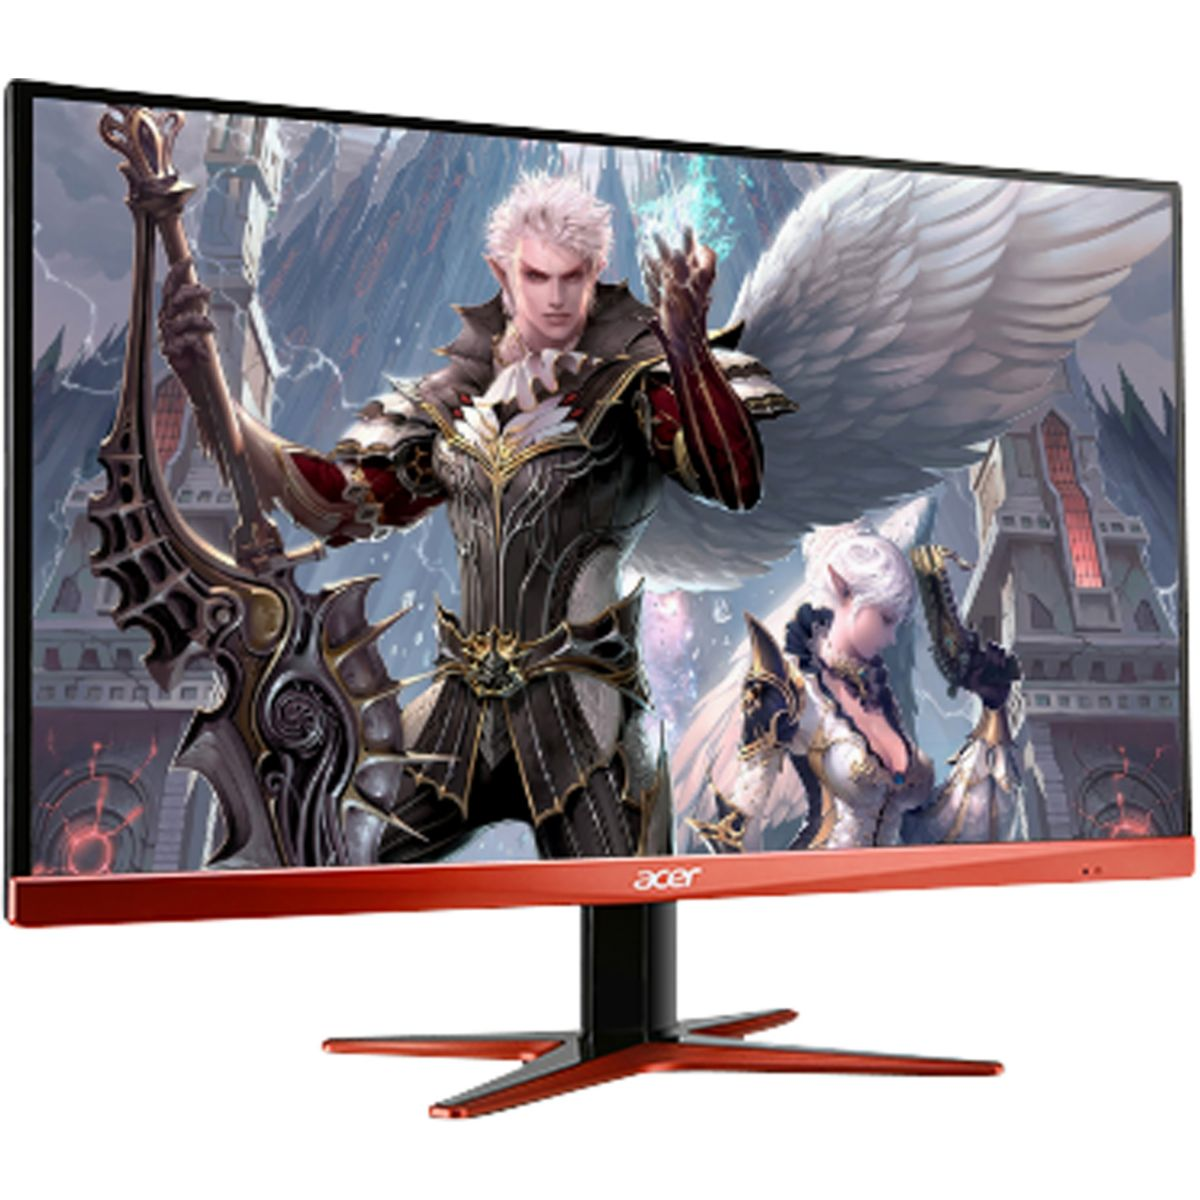 Ecran PC gamer ACER Predator XG270HU FreeSync